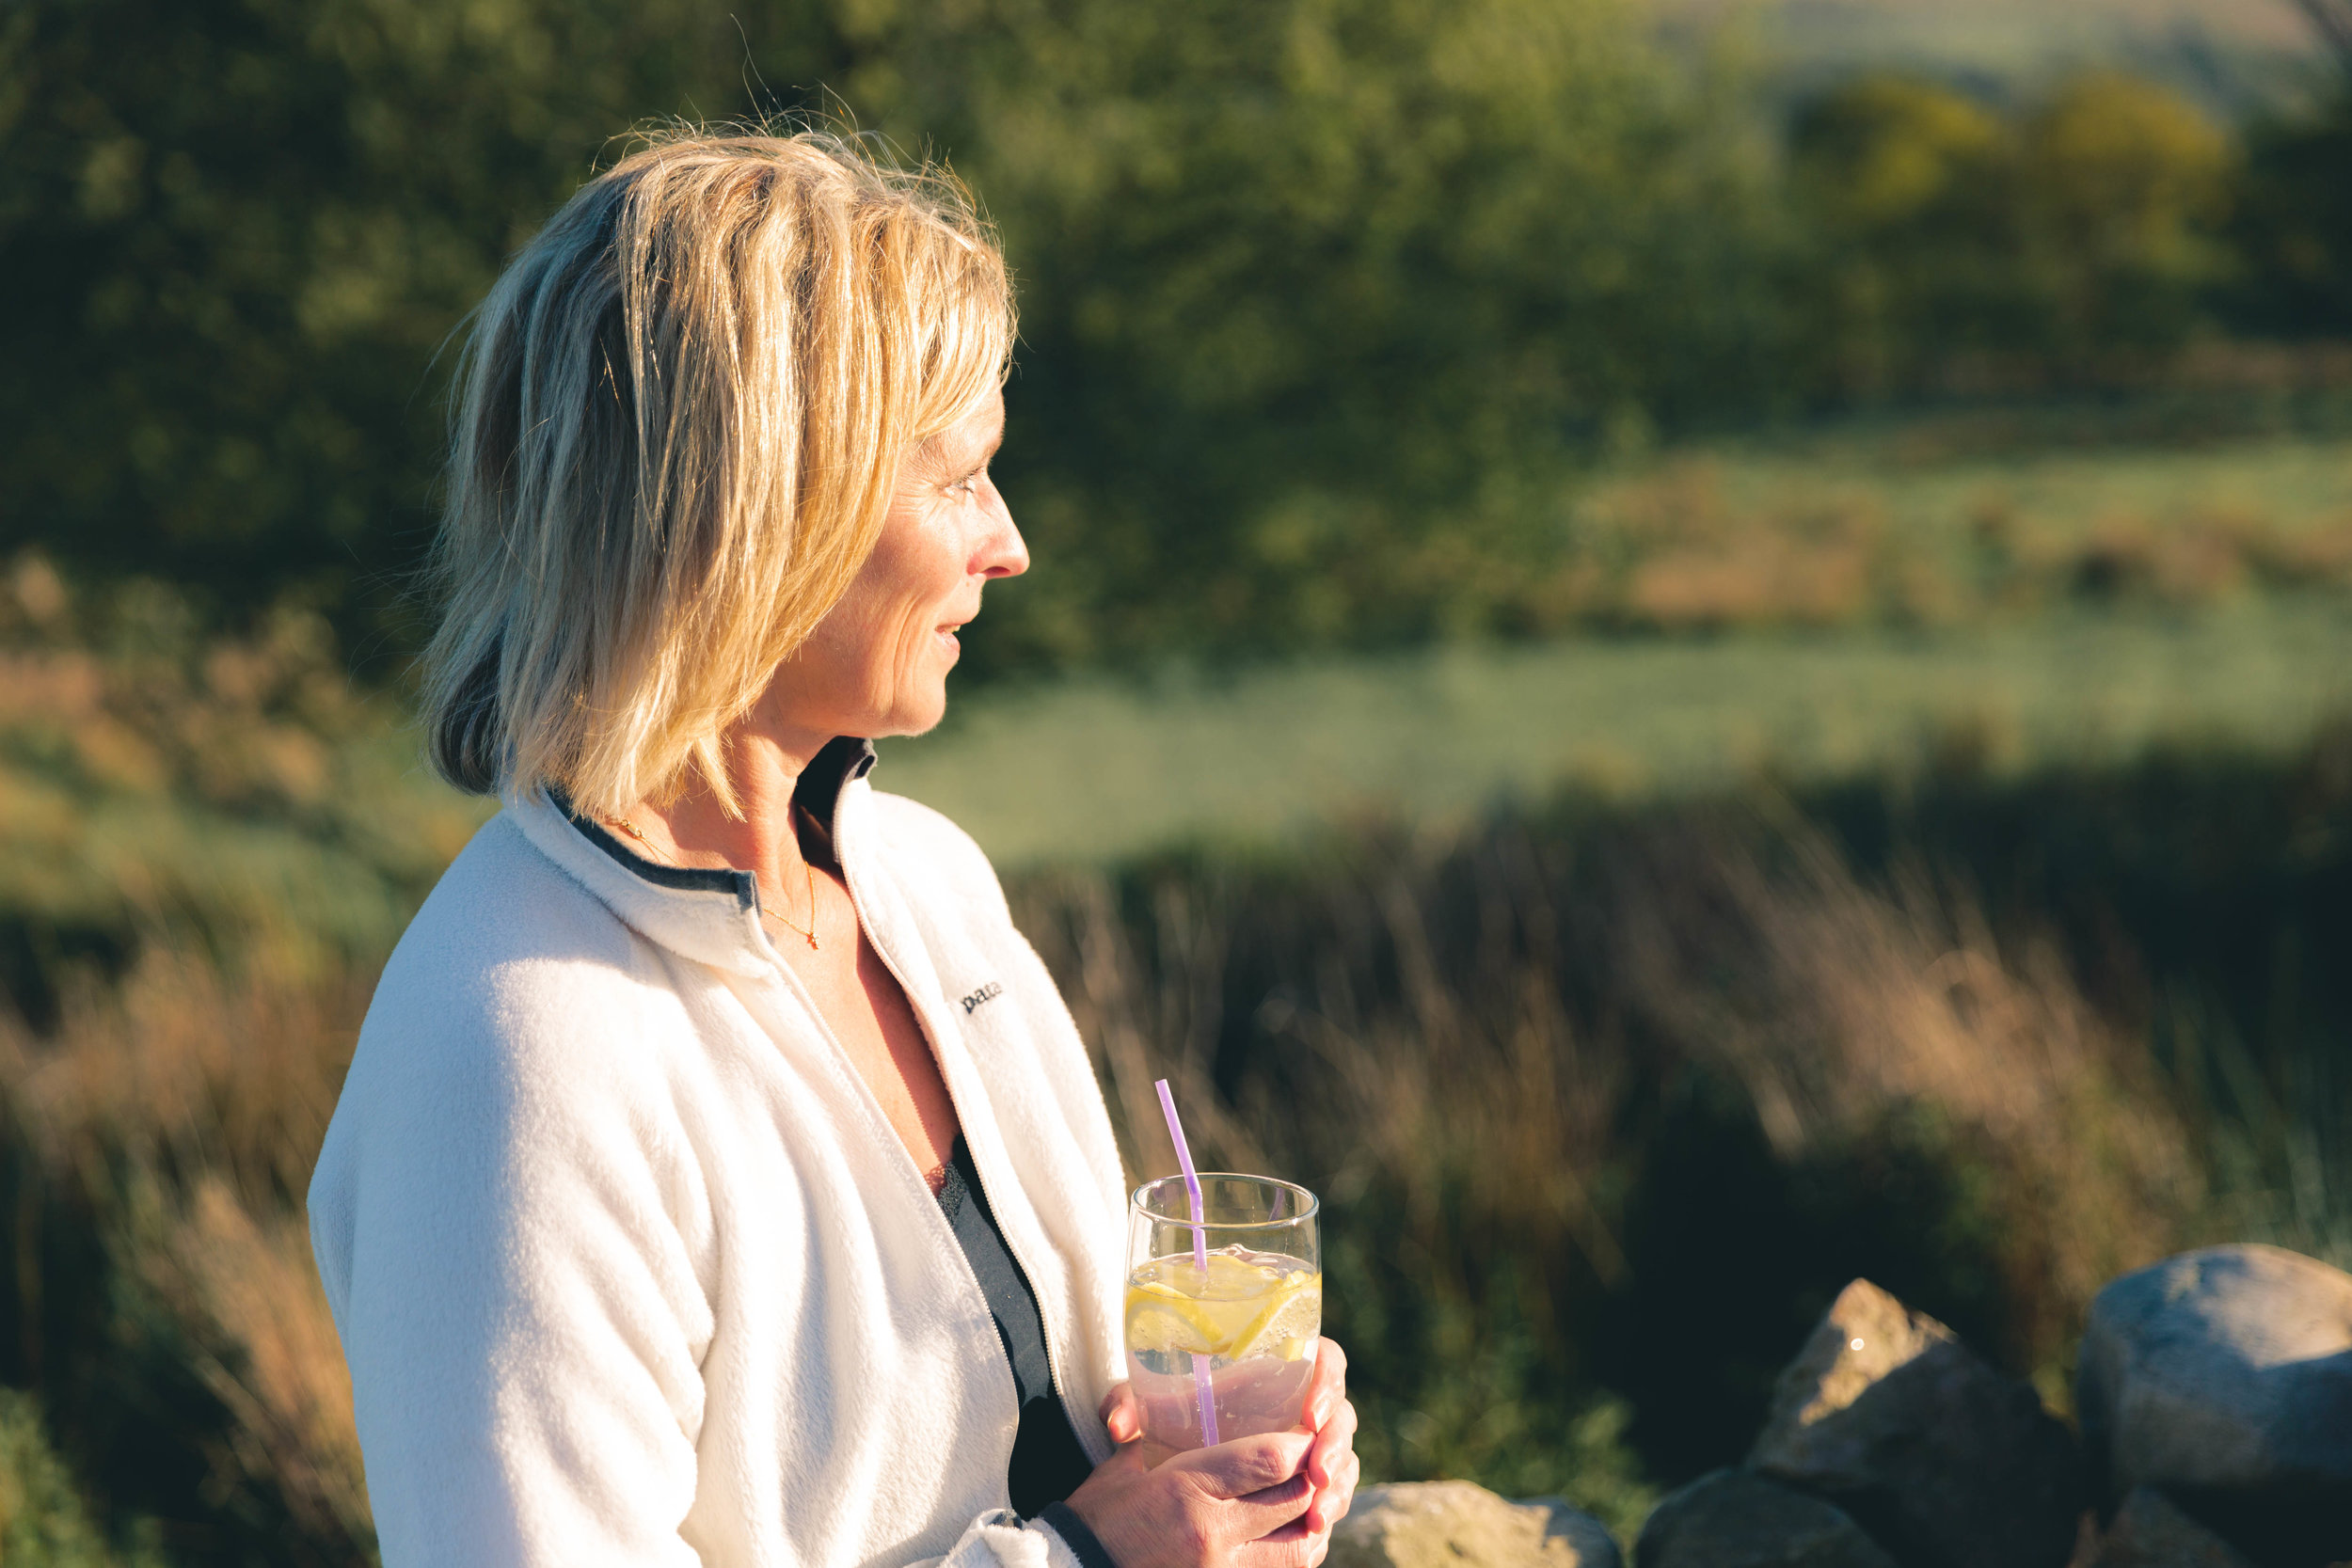 In May, I went with my family to stay in Goathland. This is my mum enjoying a well-earned G&T whilst she watches the sun go down.